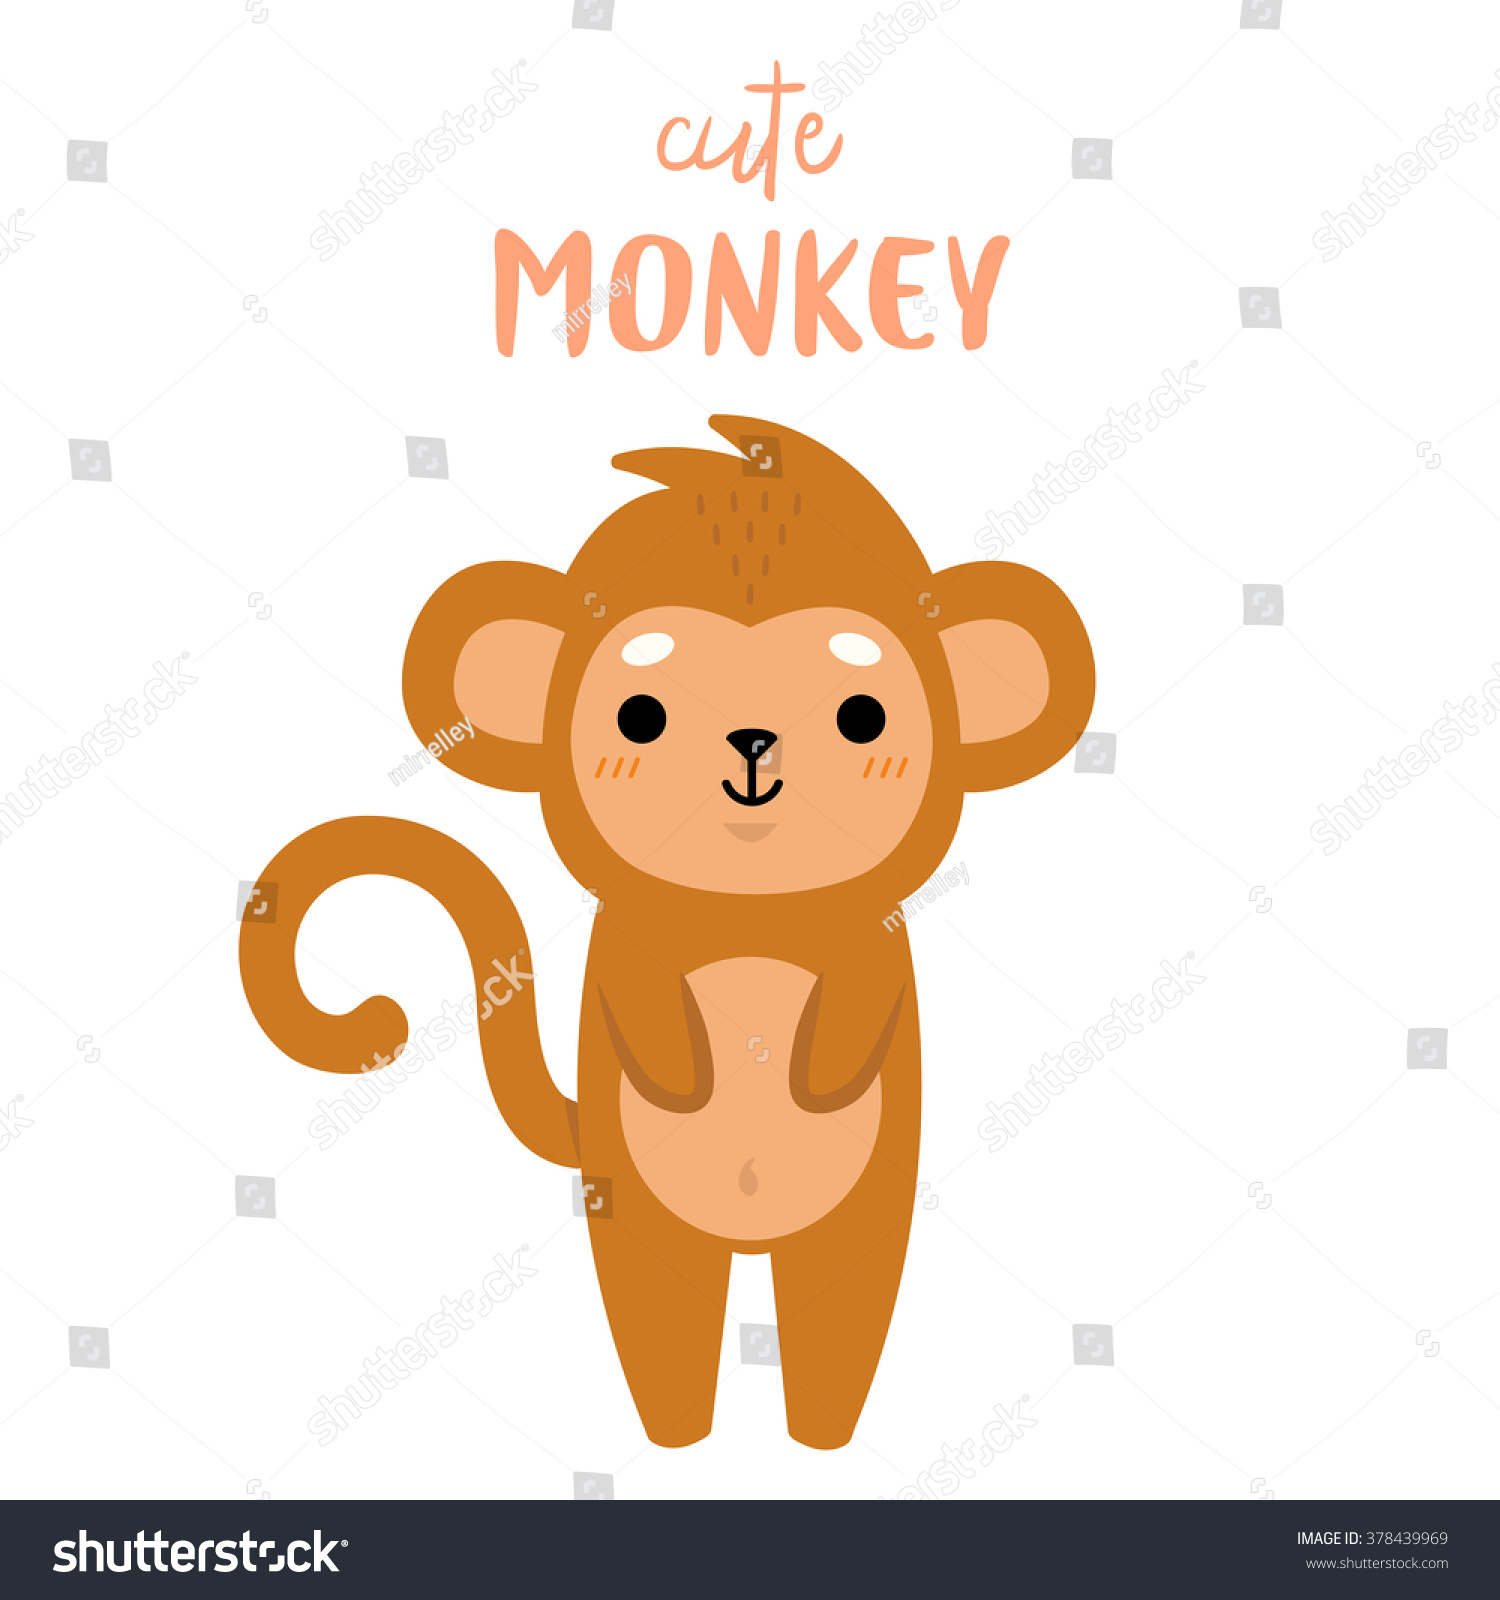 Illustration cute cartoon baby monkey on stock vector royalty free illustration of cute cartoon baby monkey on white background can be used for greeting cards m4hsunfo